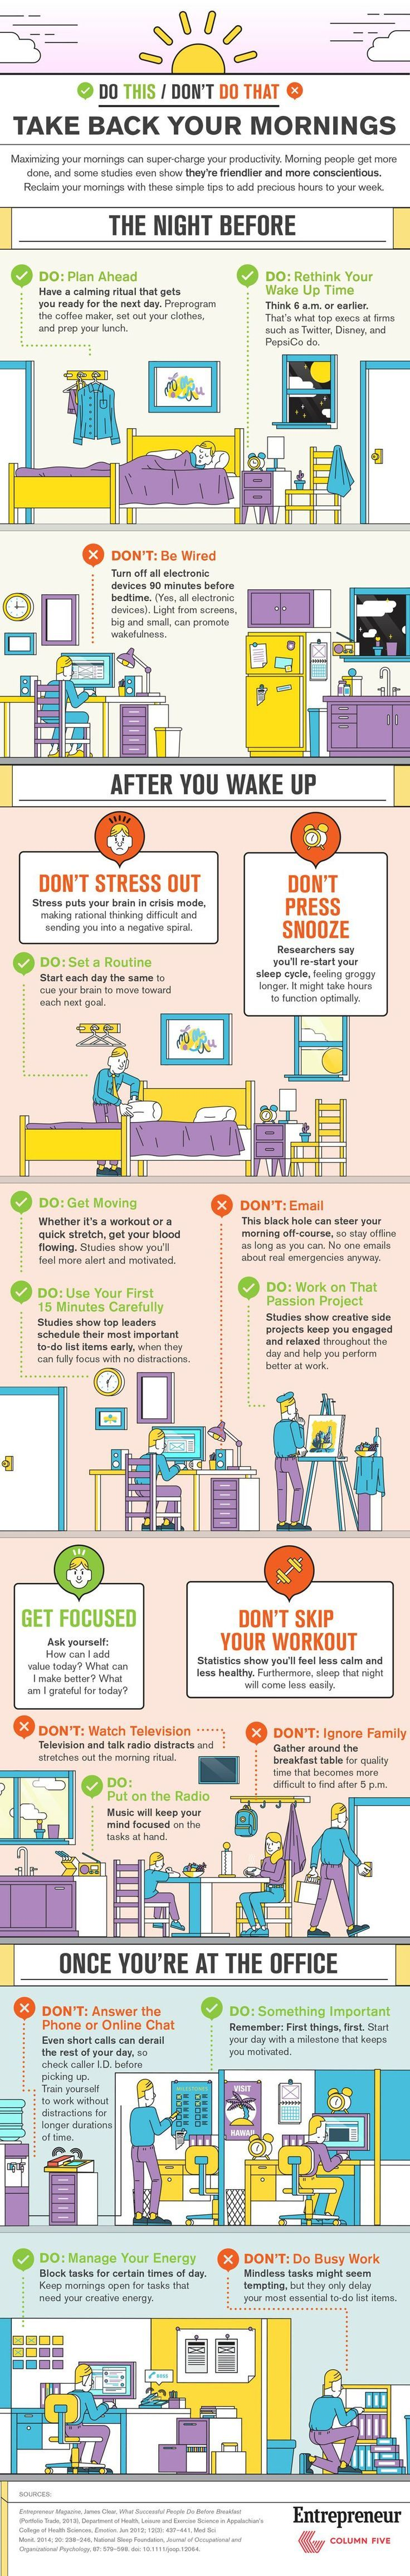 The do's and dont's of starting your morning right